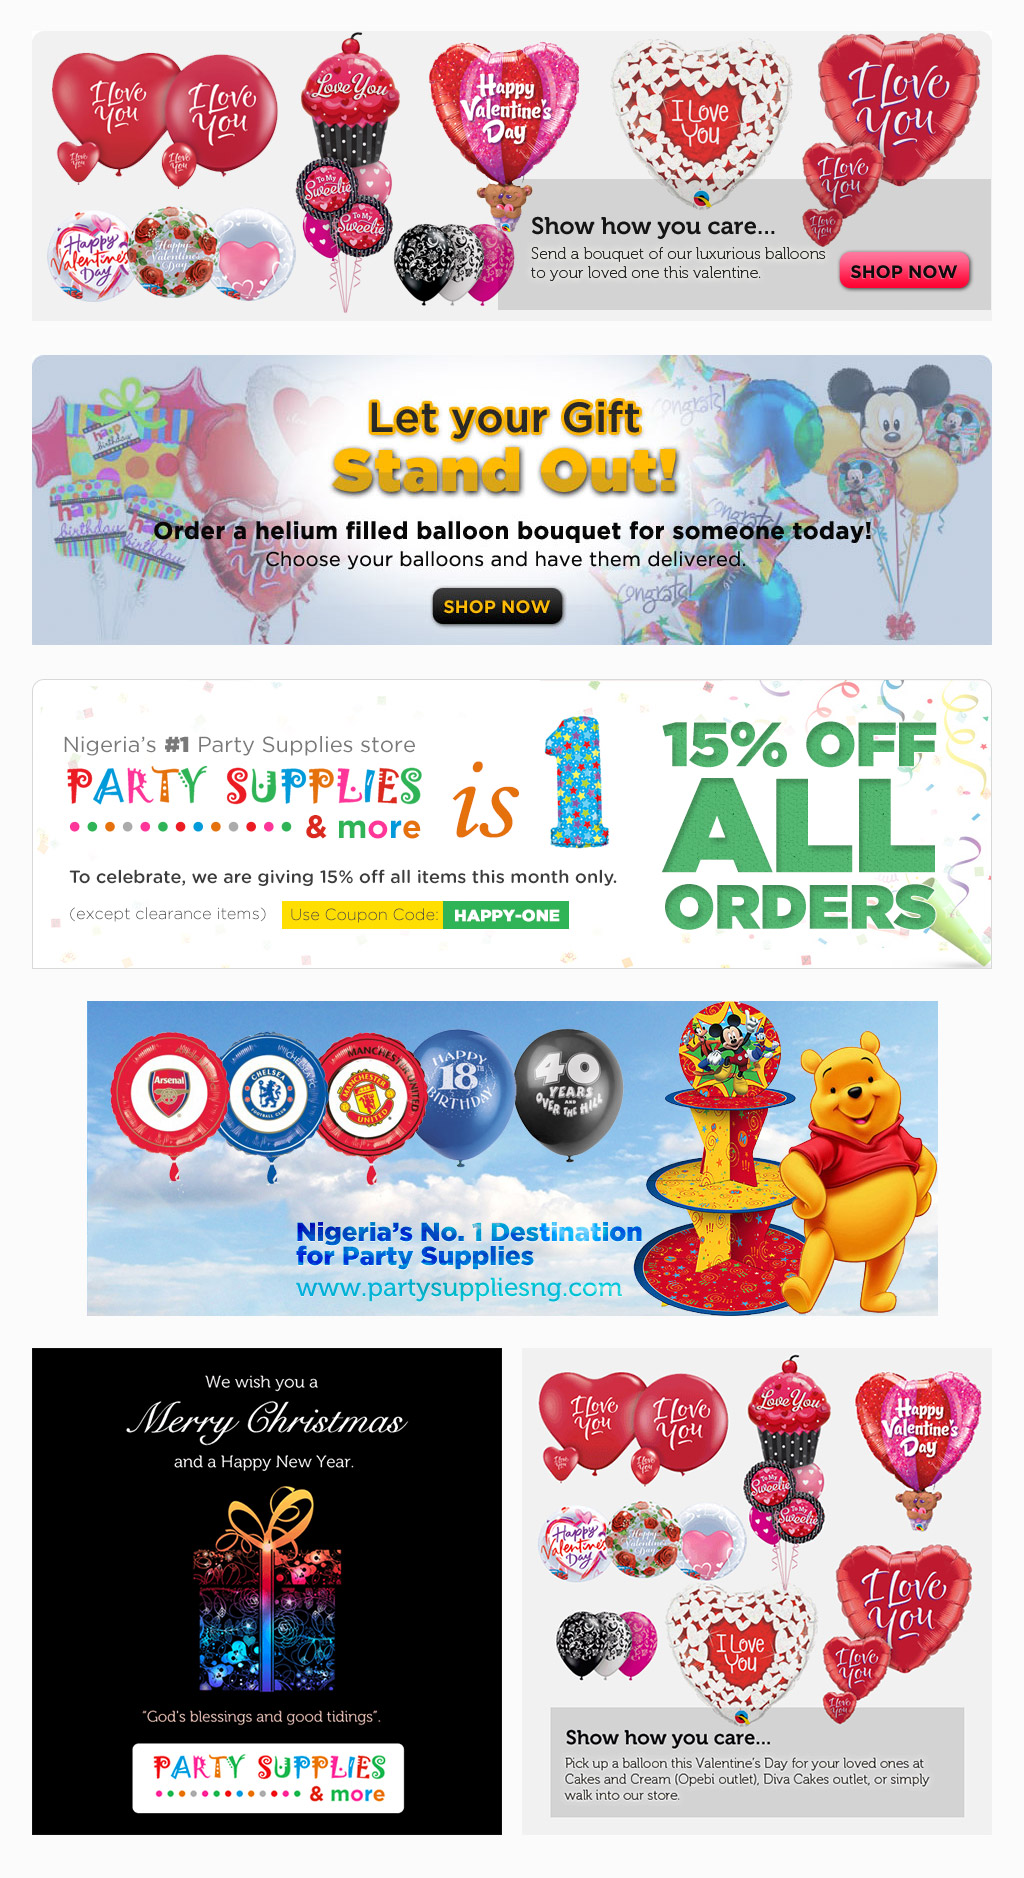 party-supplies-and-more-graphics-design